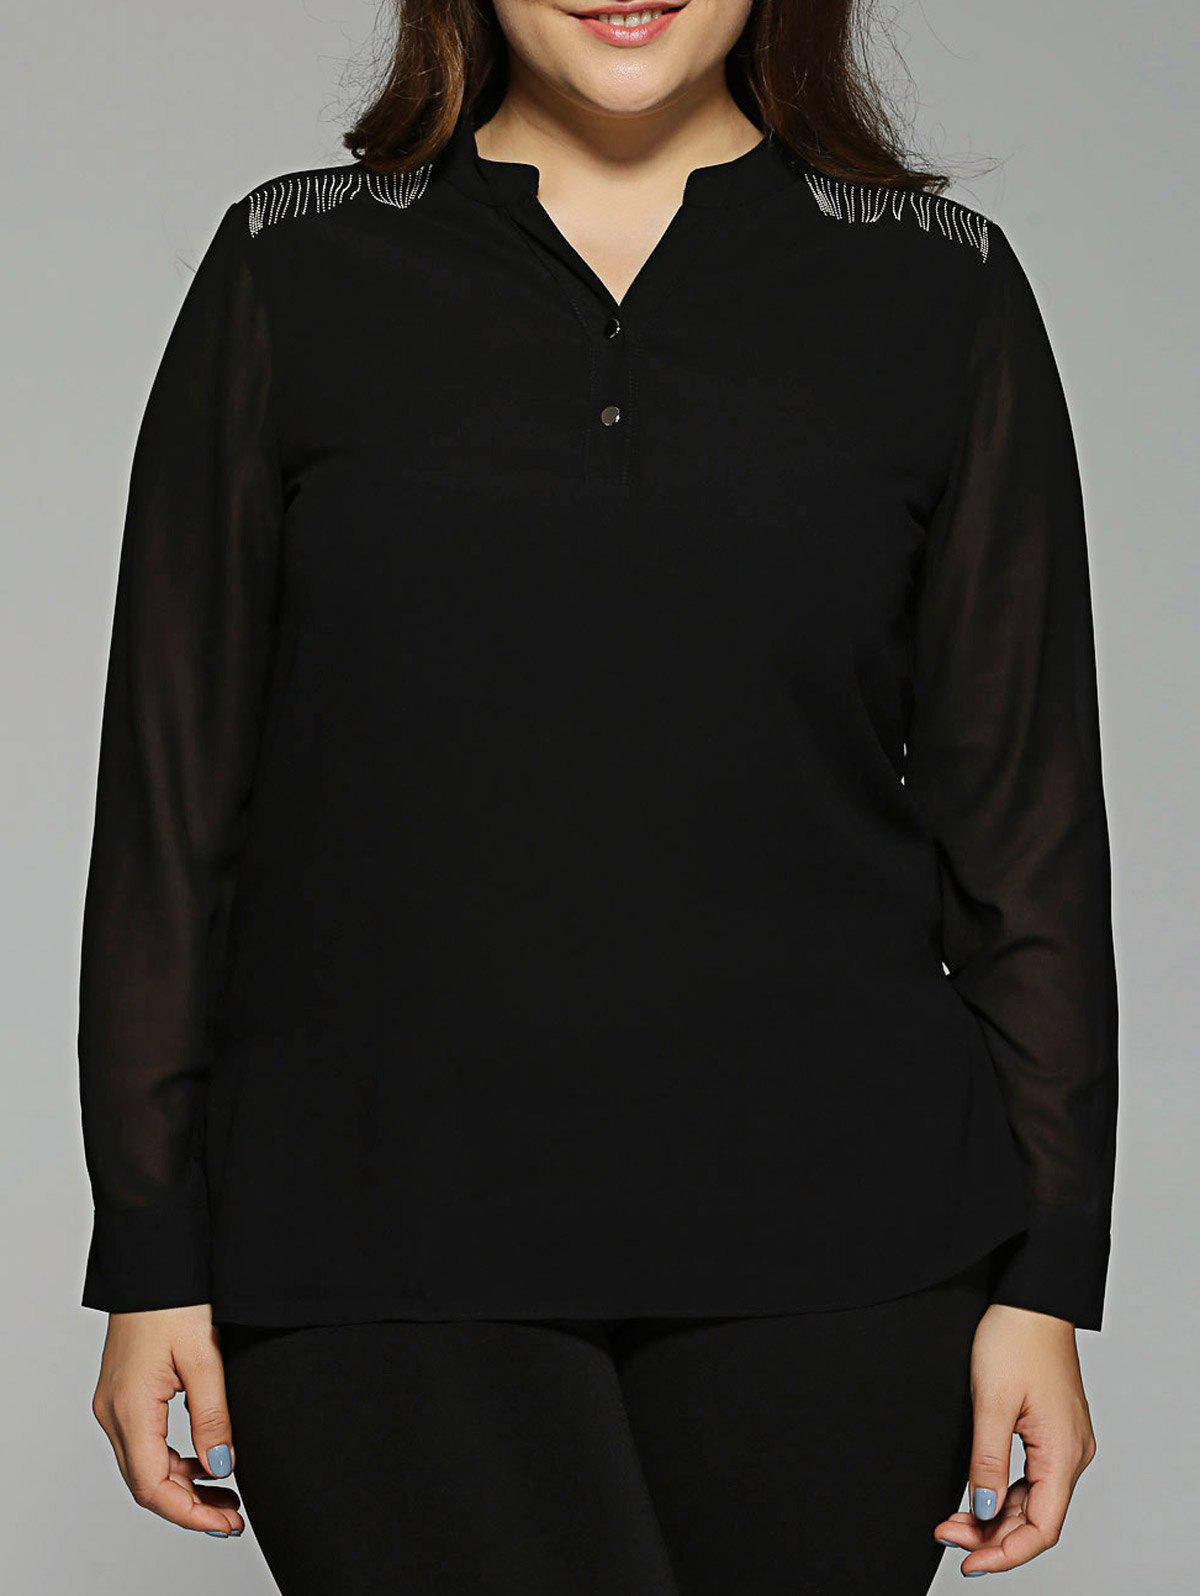 Plus Size See-Through Asymmetric Chiffon Blouse - BLACK 5XL